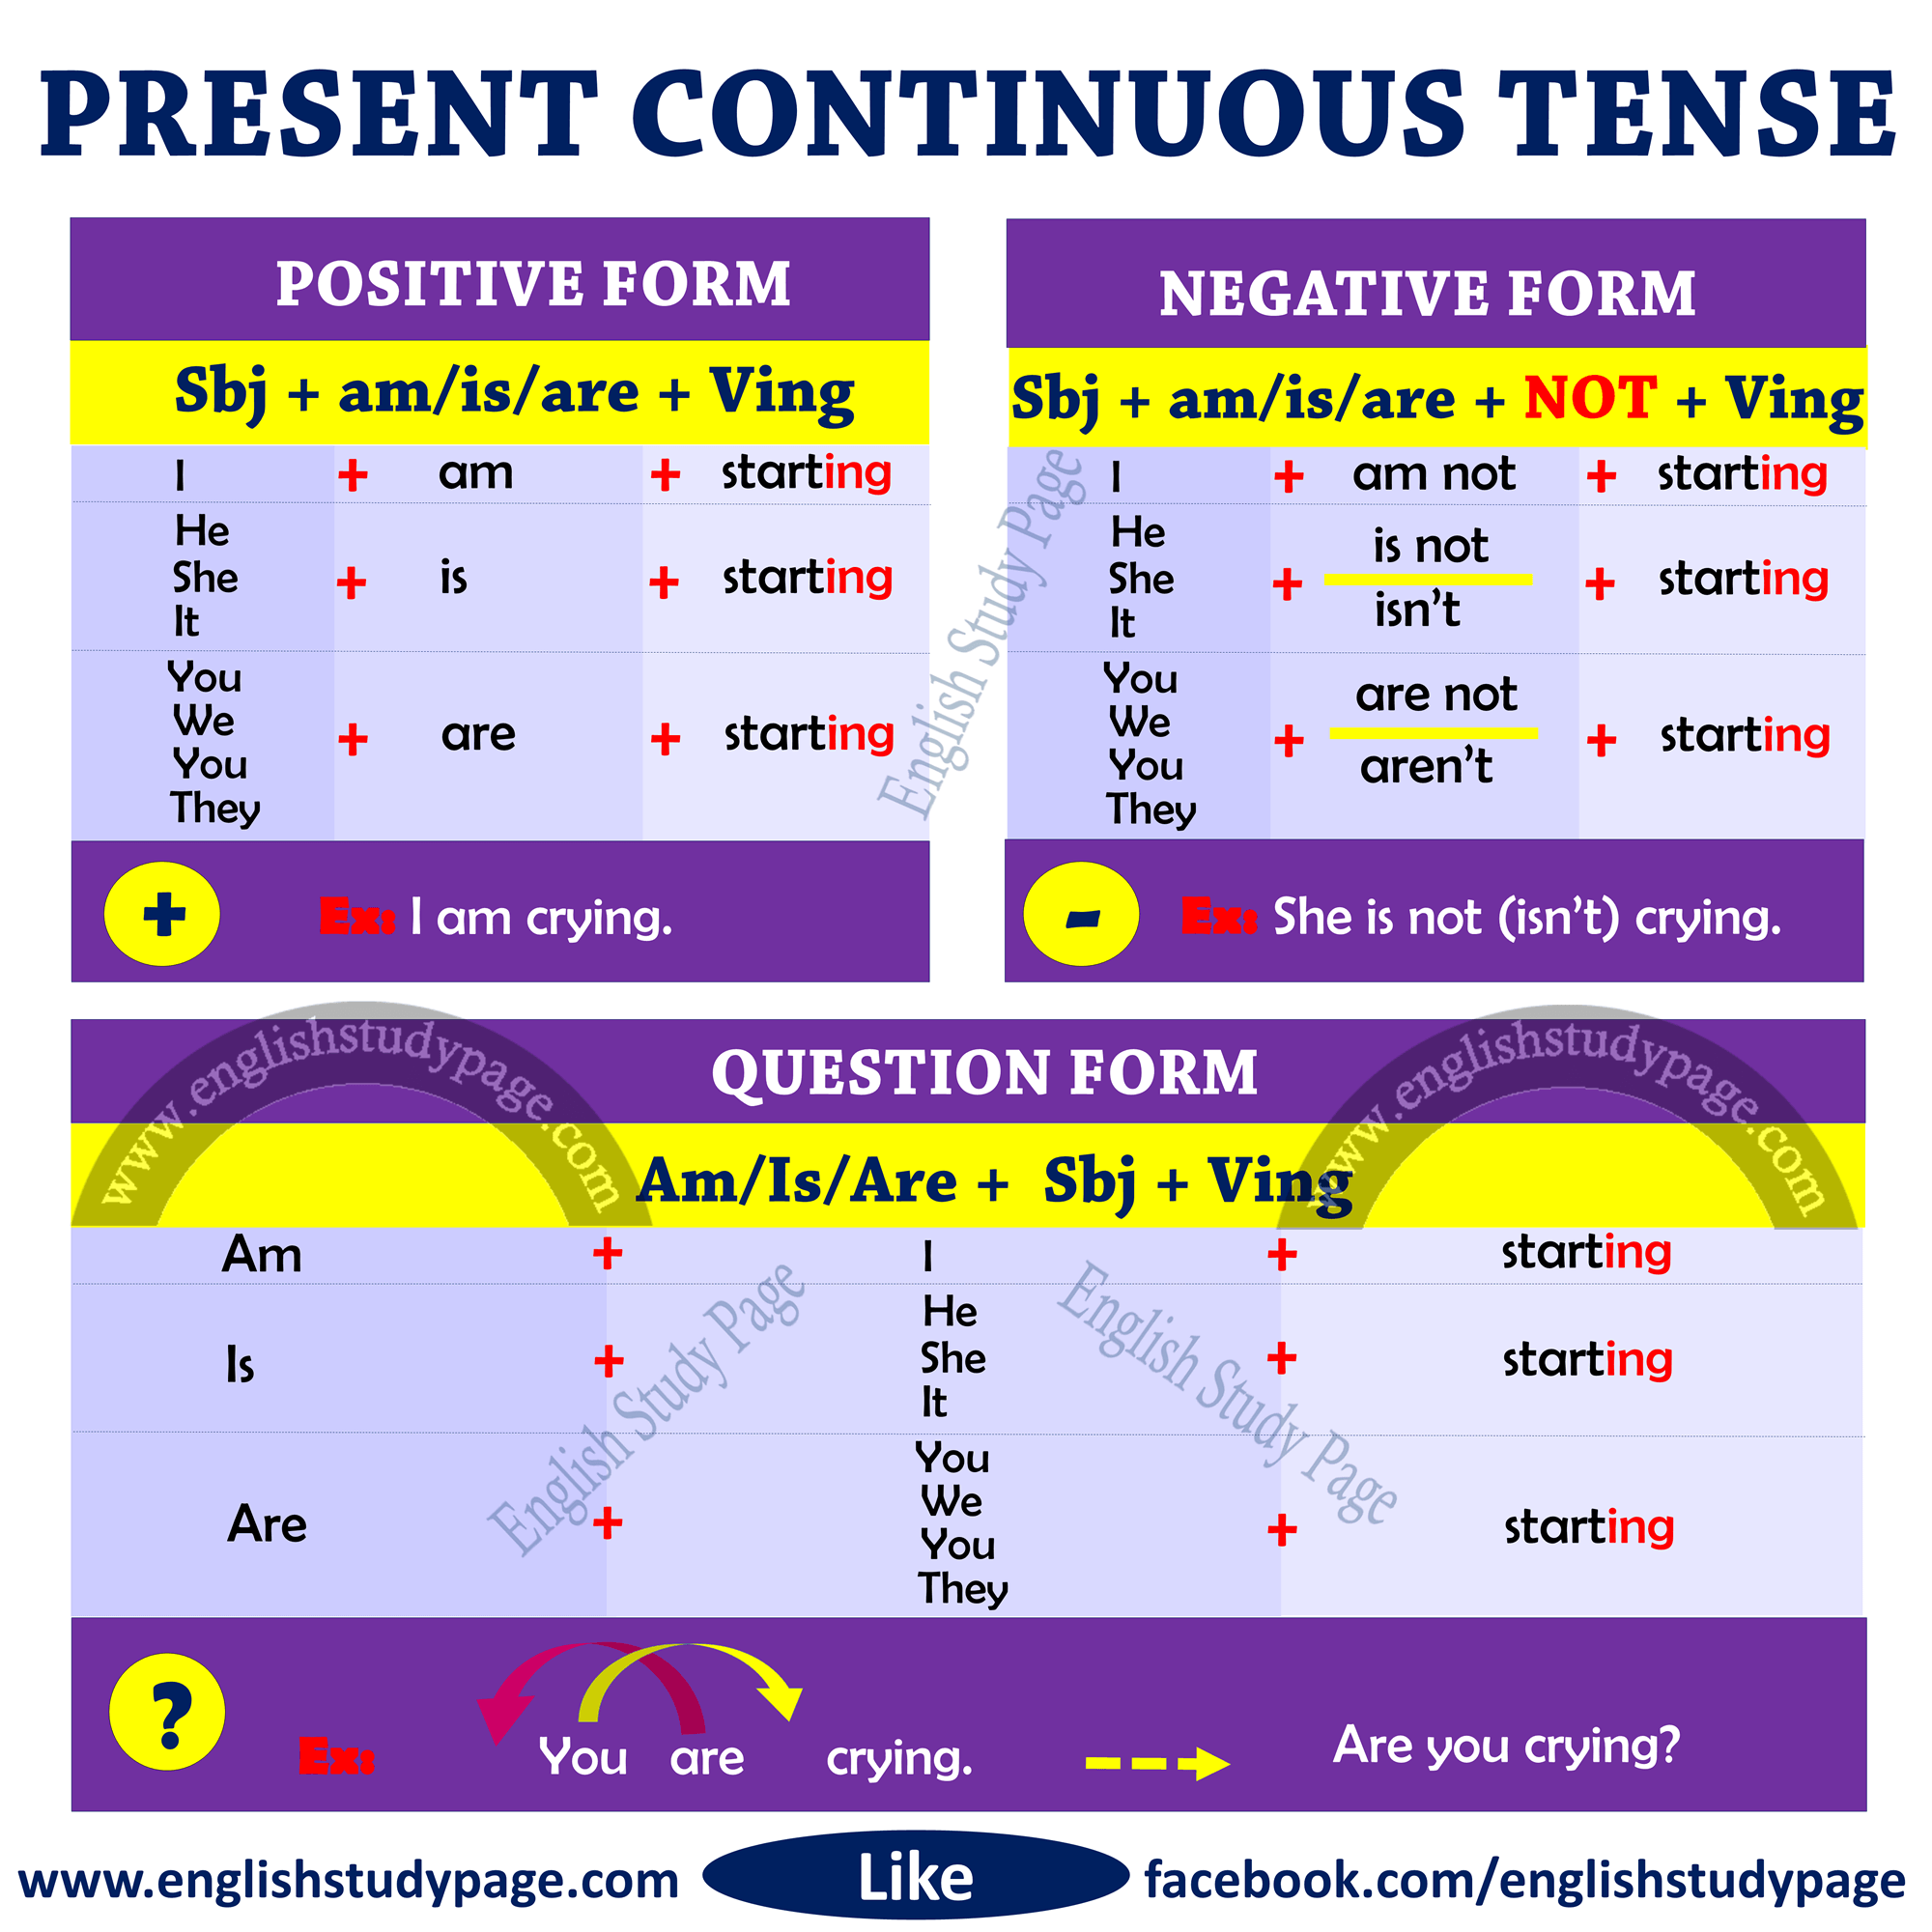 Structure Of Present Continuous Tense With Images